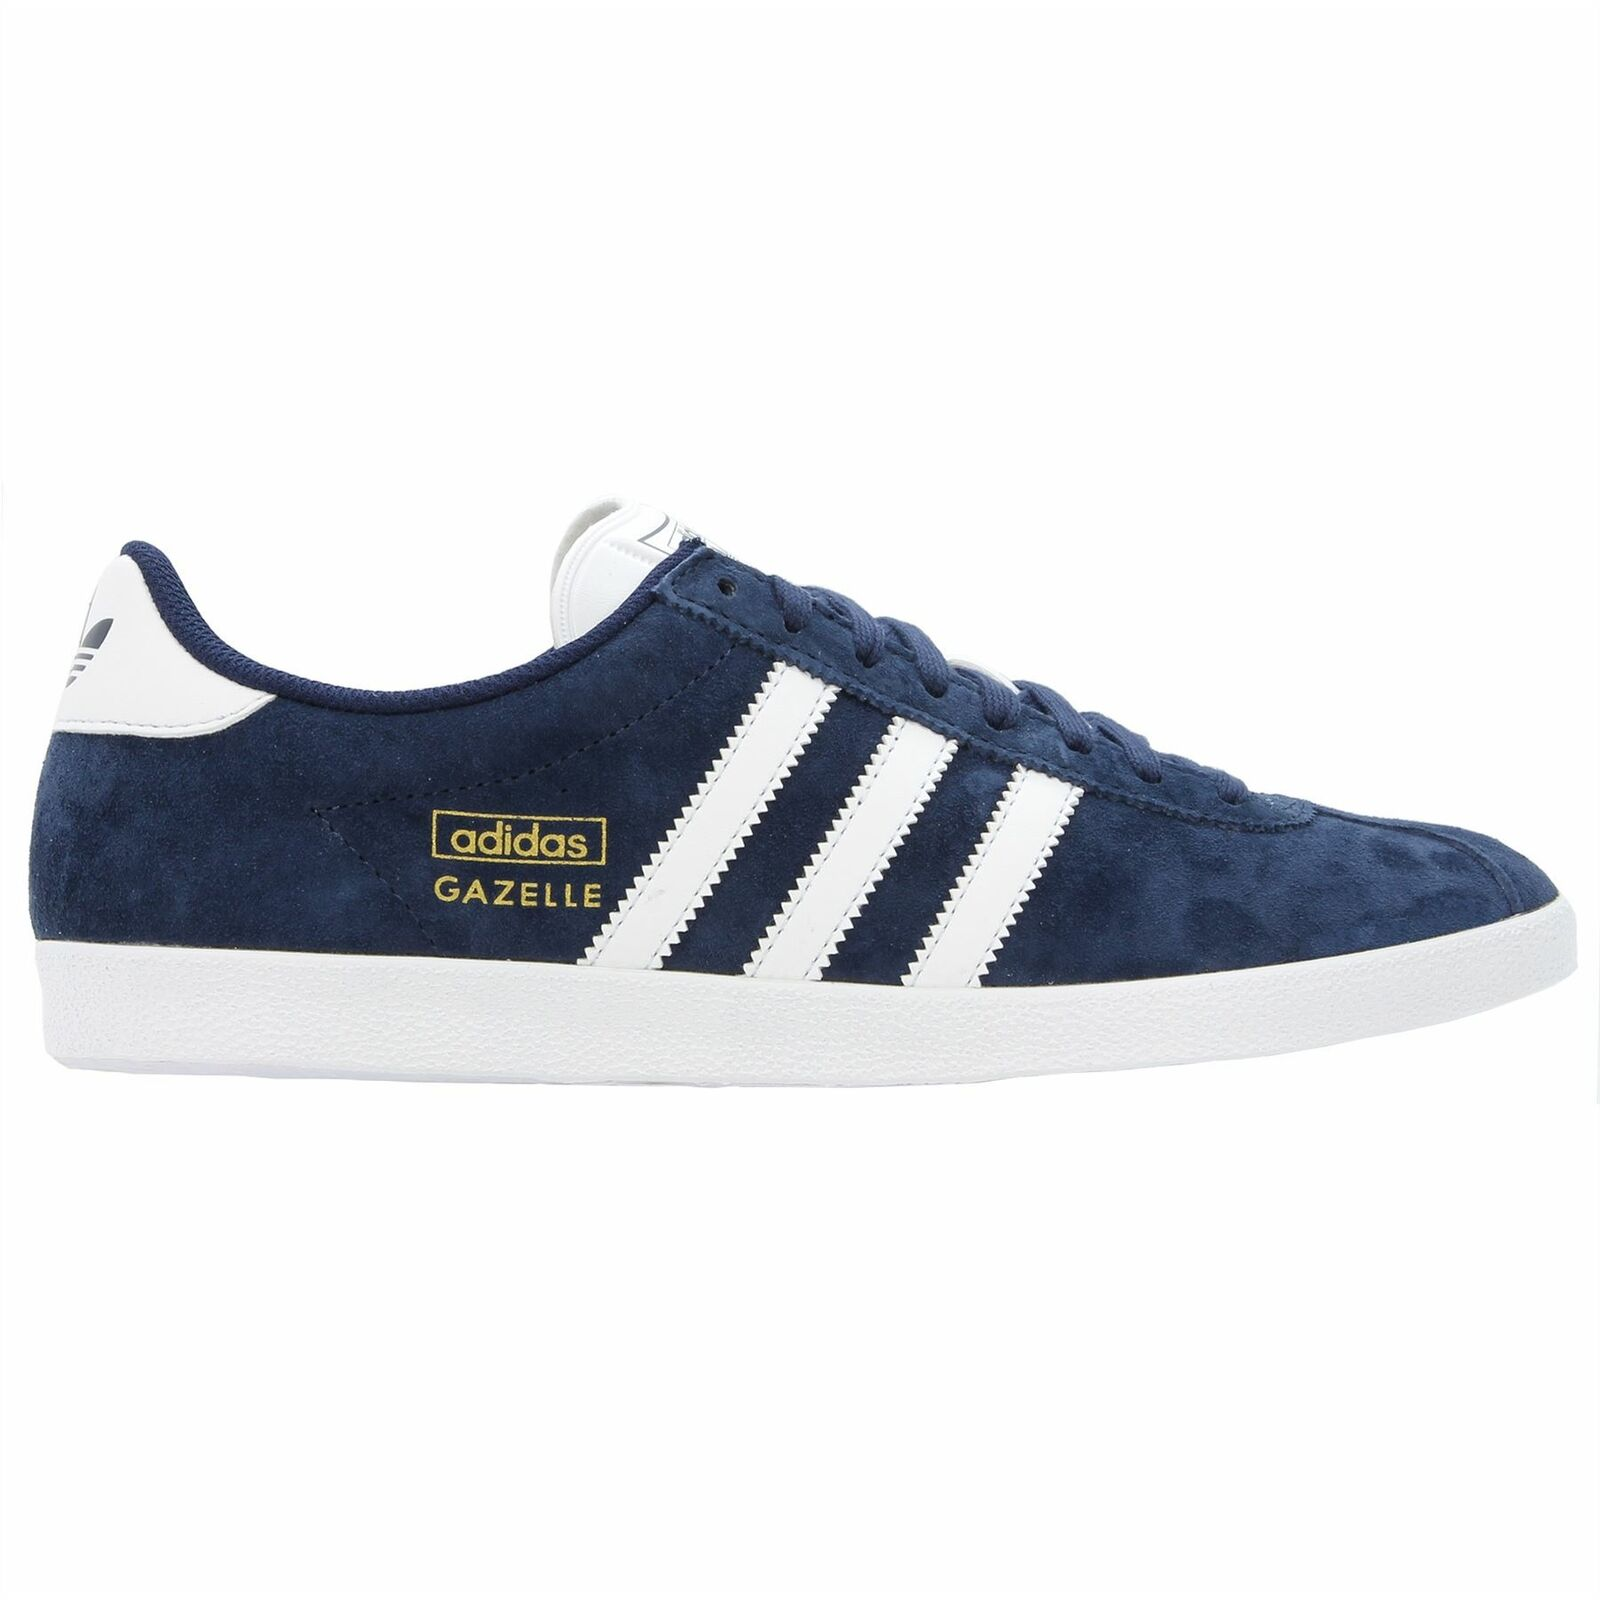 Adidas Mens Gazelle OG Lace Up Casual Trainers Navy  (Q21600)